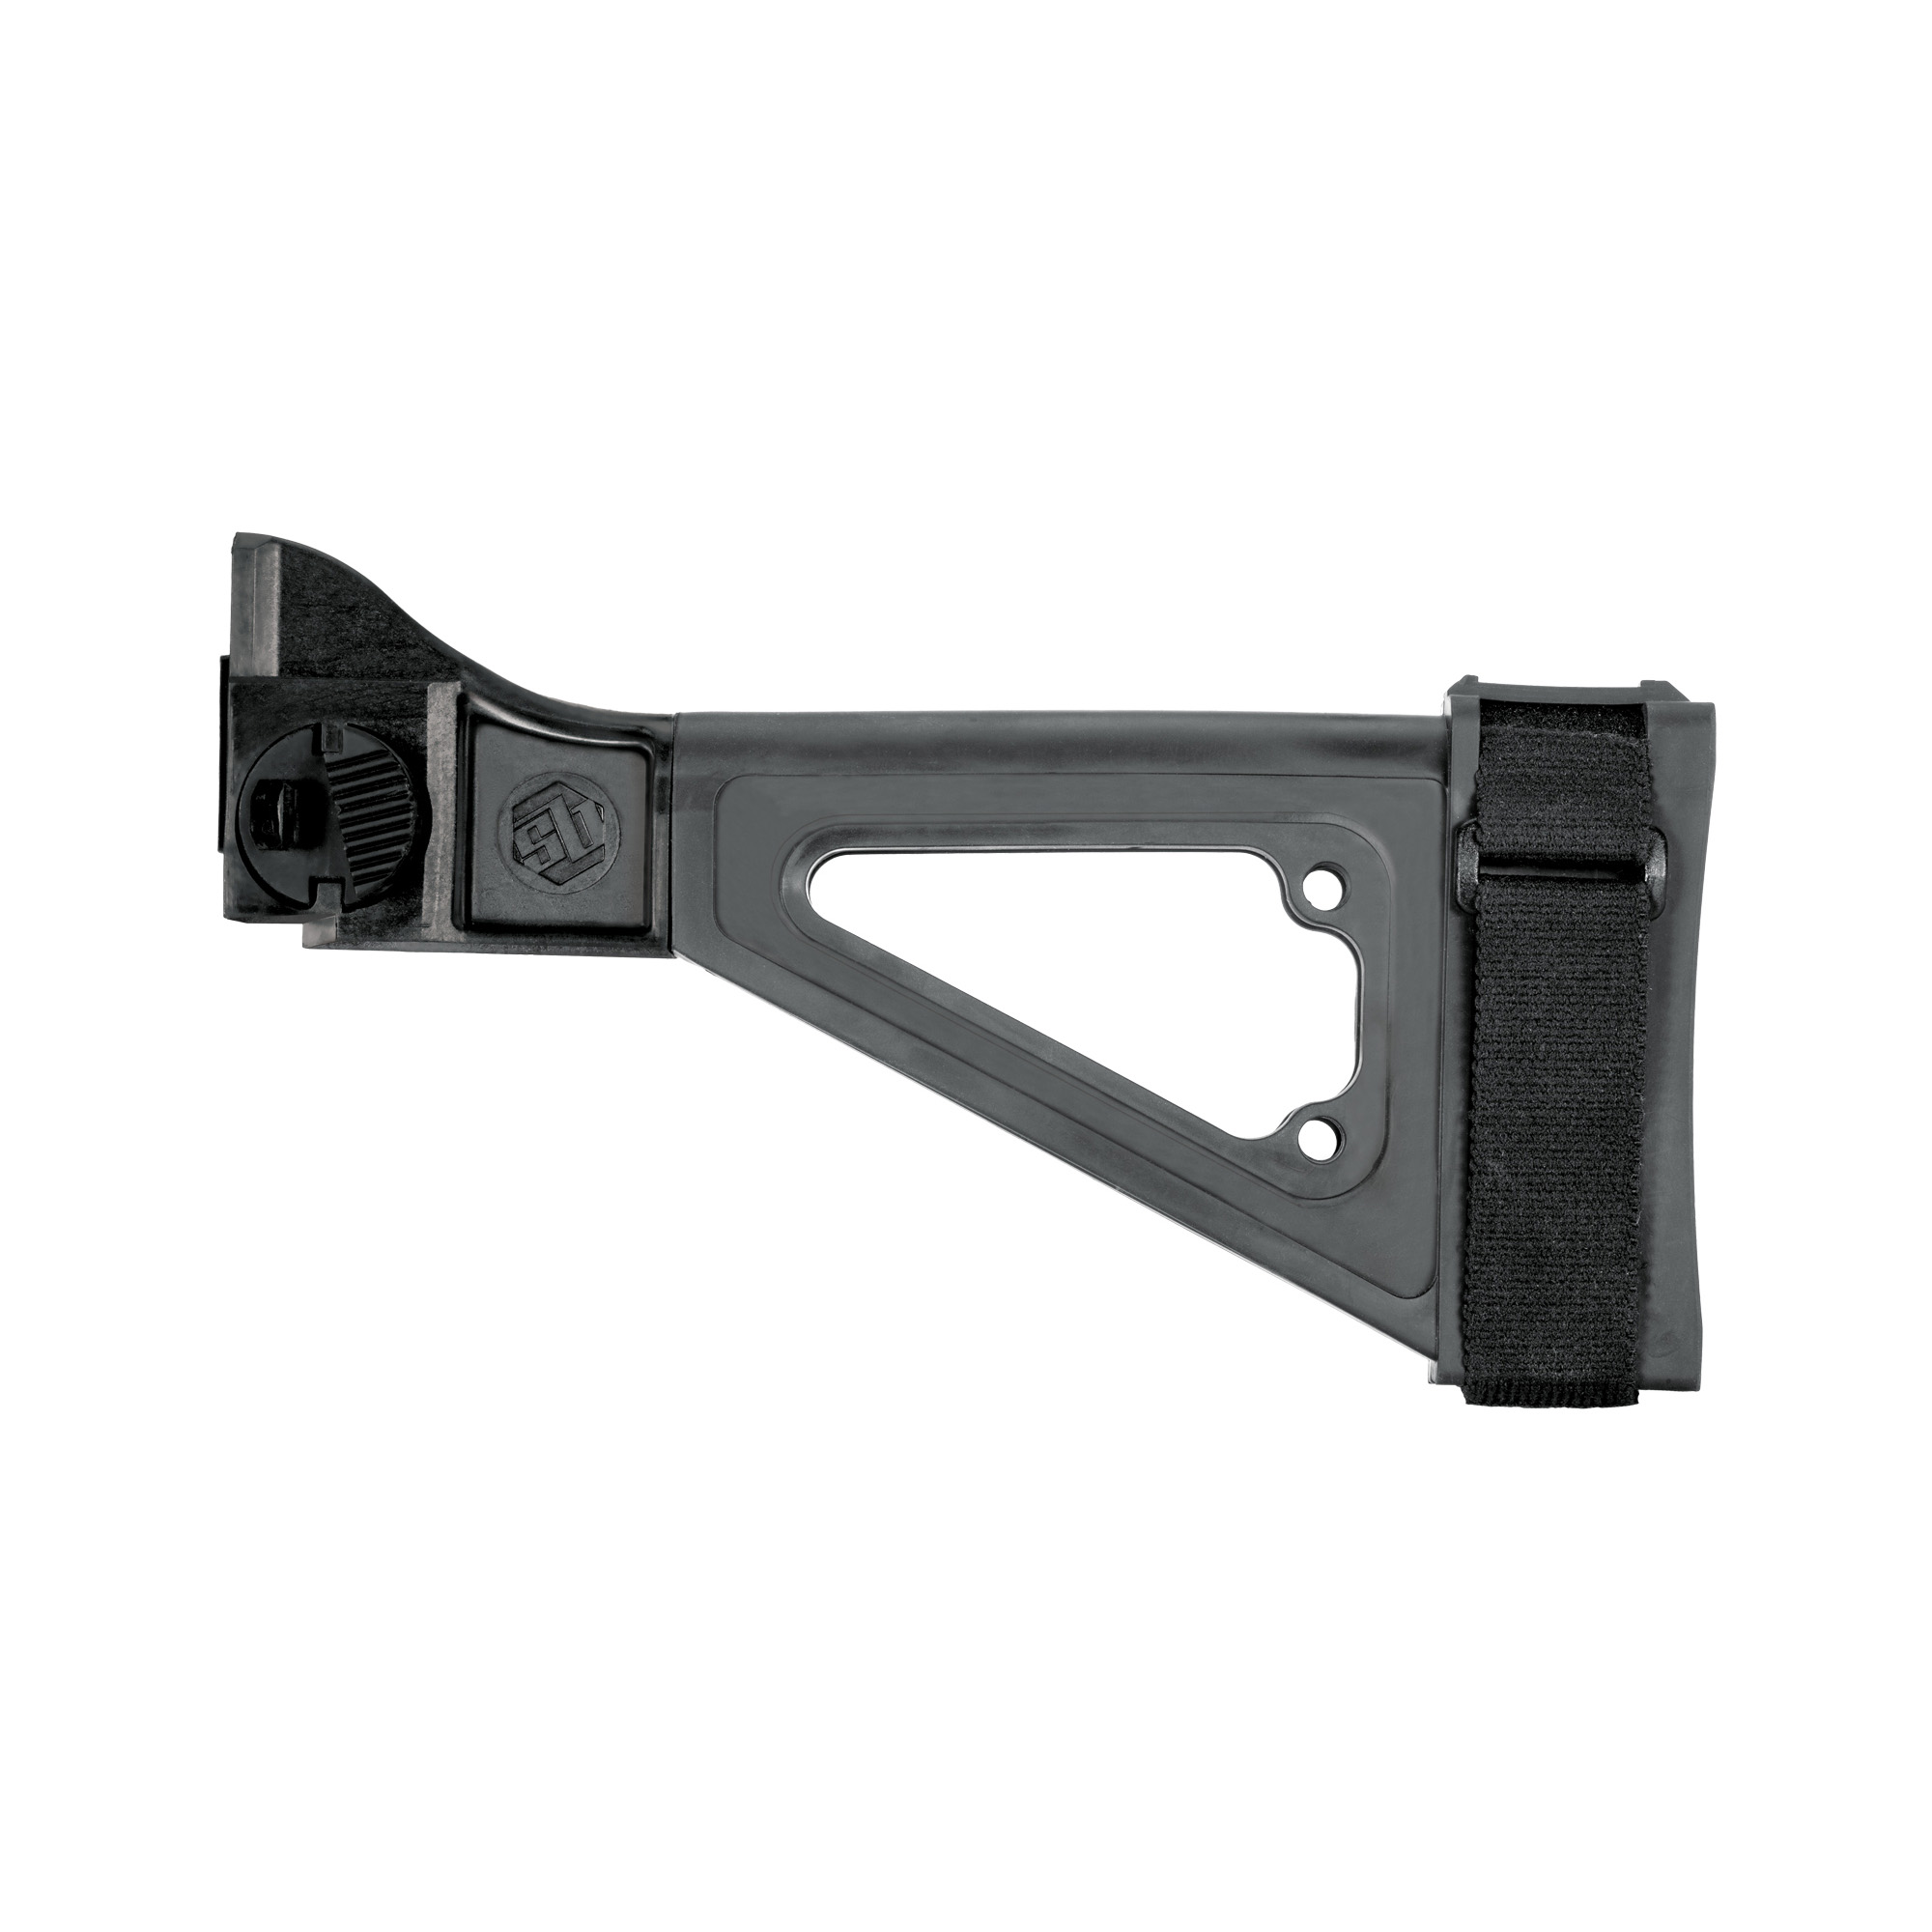 """A skeletonized version of the SBT Pistol Stabilizing Brace"""" the SBTi enhances your B&T APC or HK UMP with an integral"""" side-folding mechanism. The SBTi variant also allows you to customize the look of your platform equipped with any compatible SBT adapter (CZ Scorpion"""" CZ Bren 805"""" HK MP5"""" HK MP5K"""""""" etc.) Includes an adjustable nylon strap."""